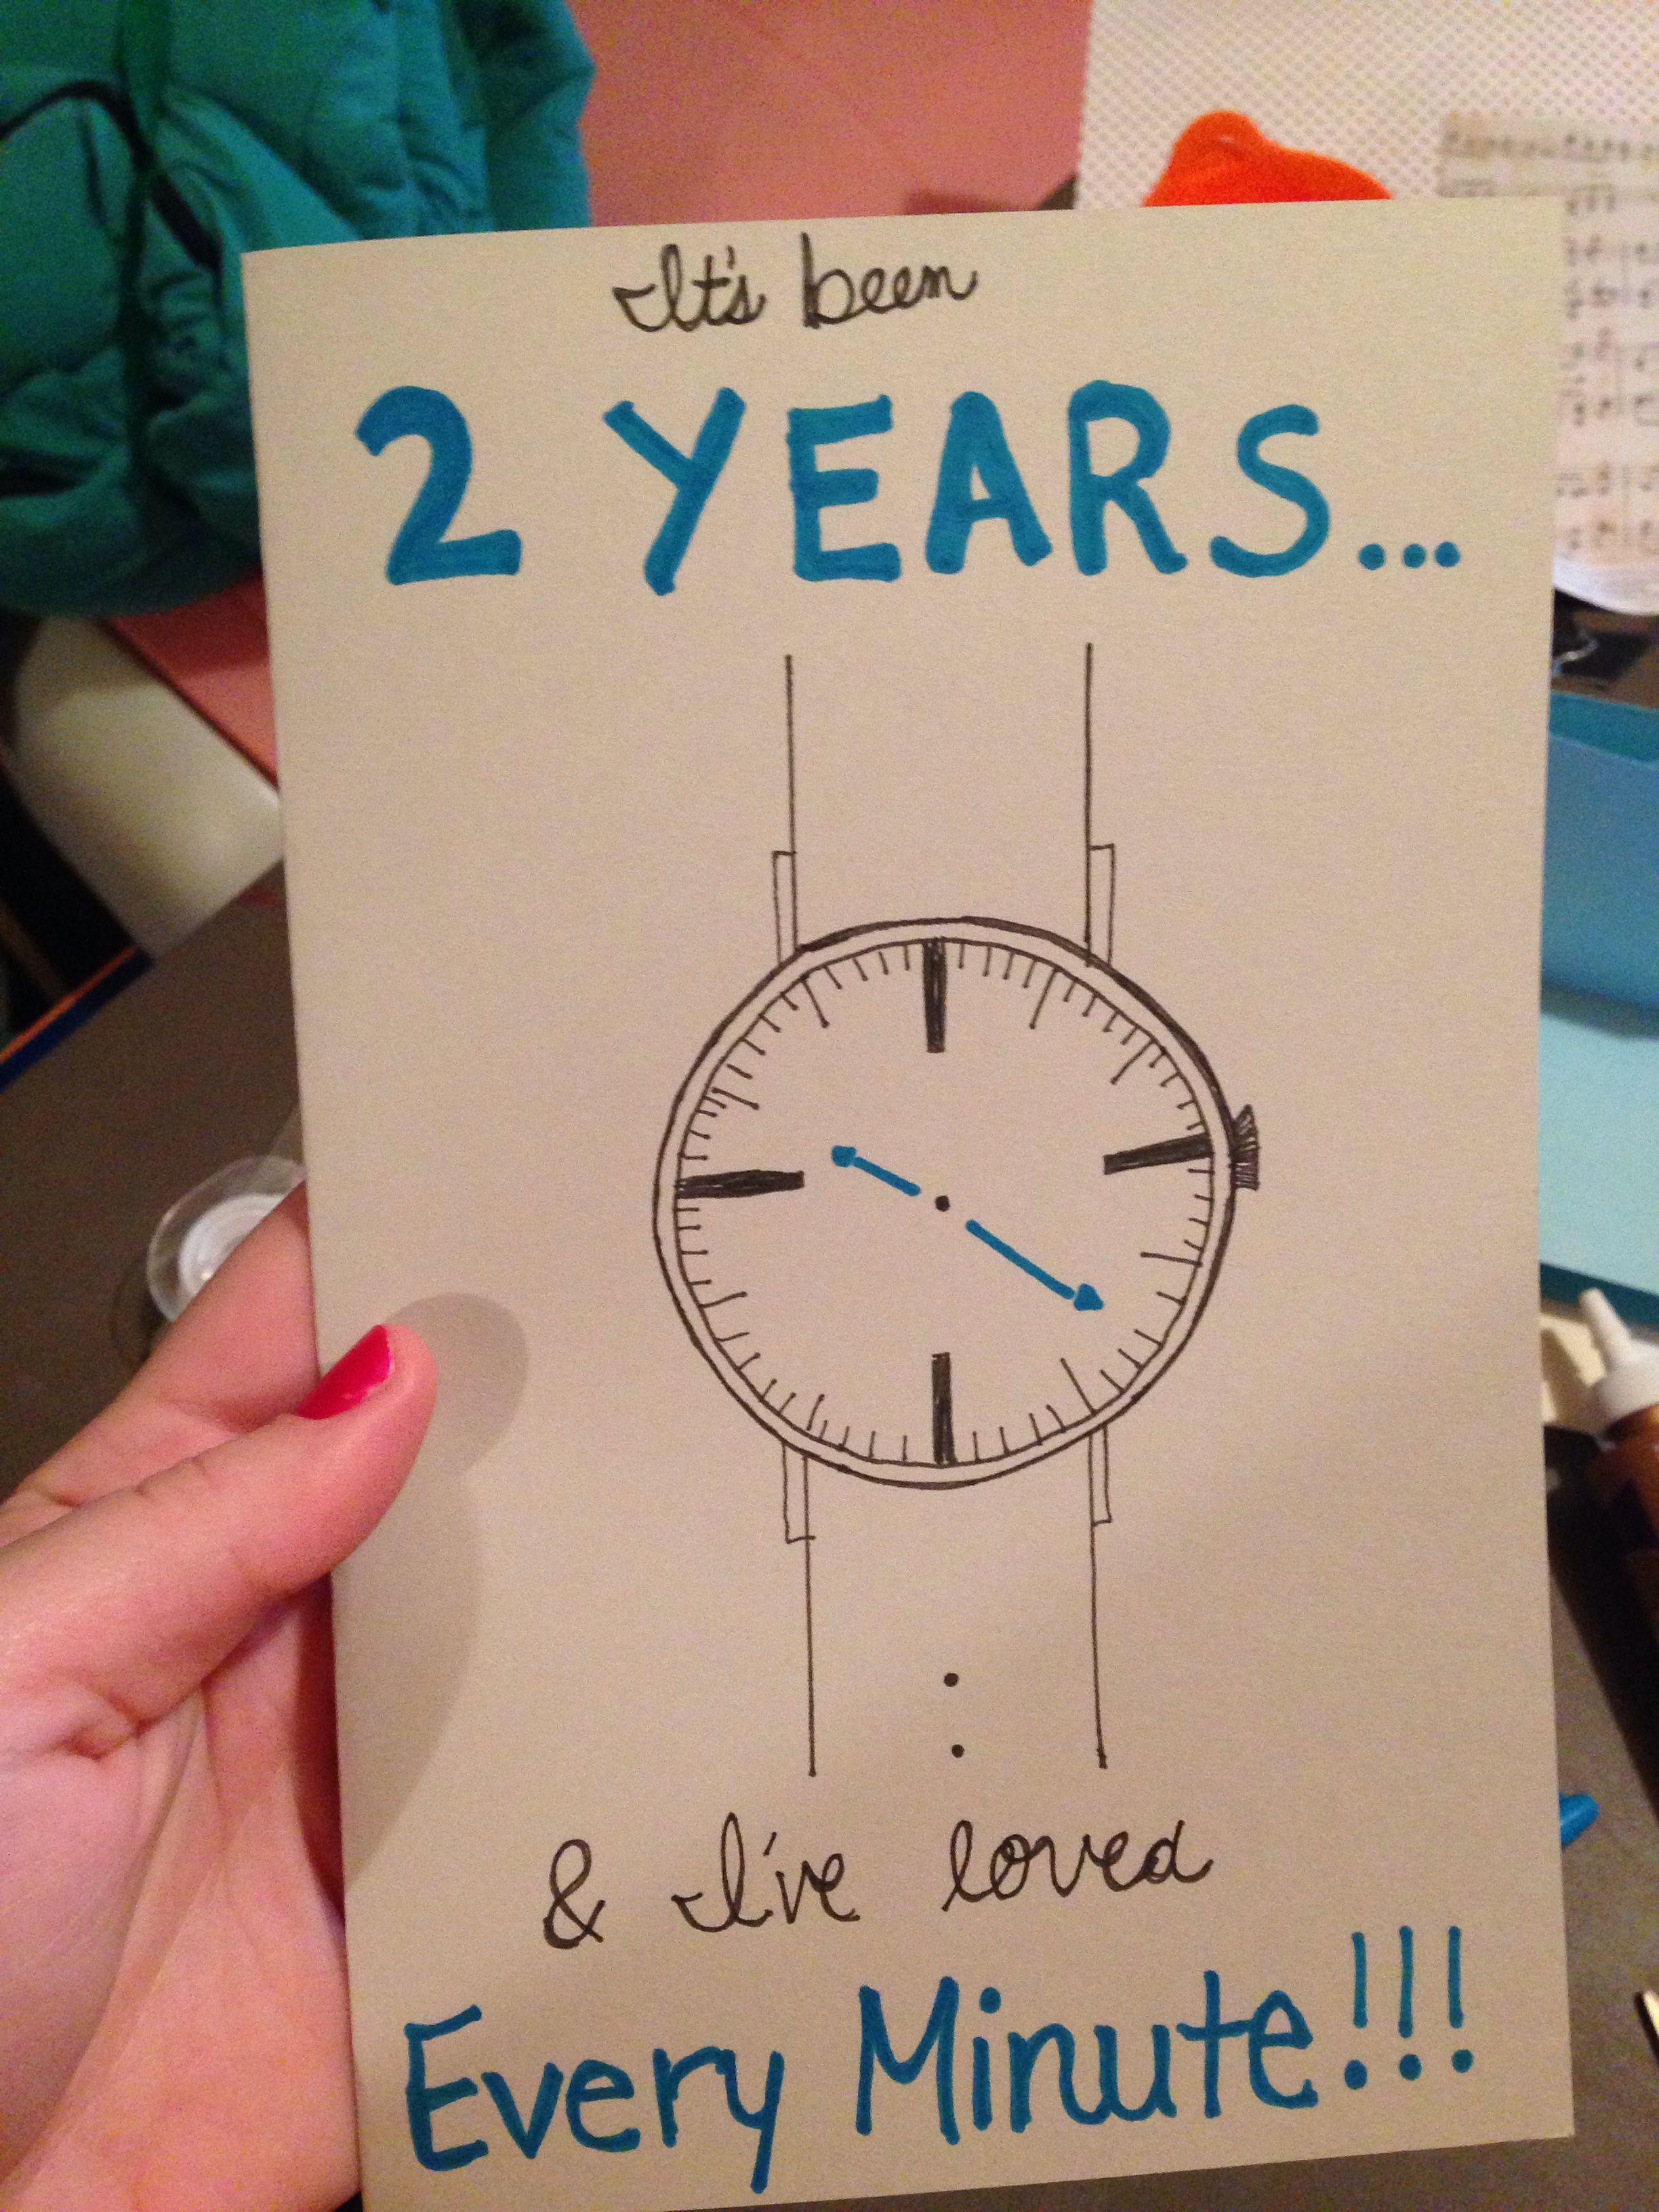 I made this card for my boyfriend for our 2 year anniversary! I also got  him a Dallas Cowboys watch to go with this!